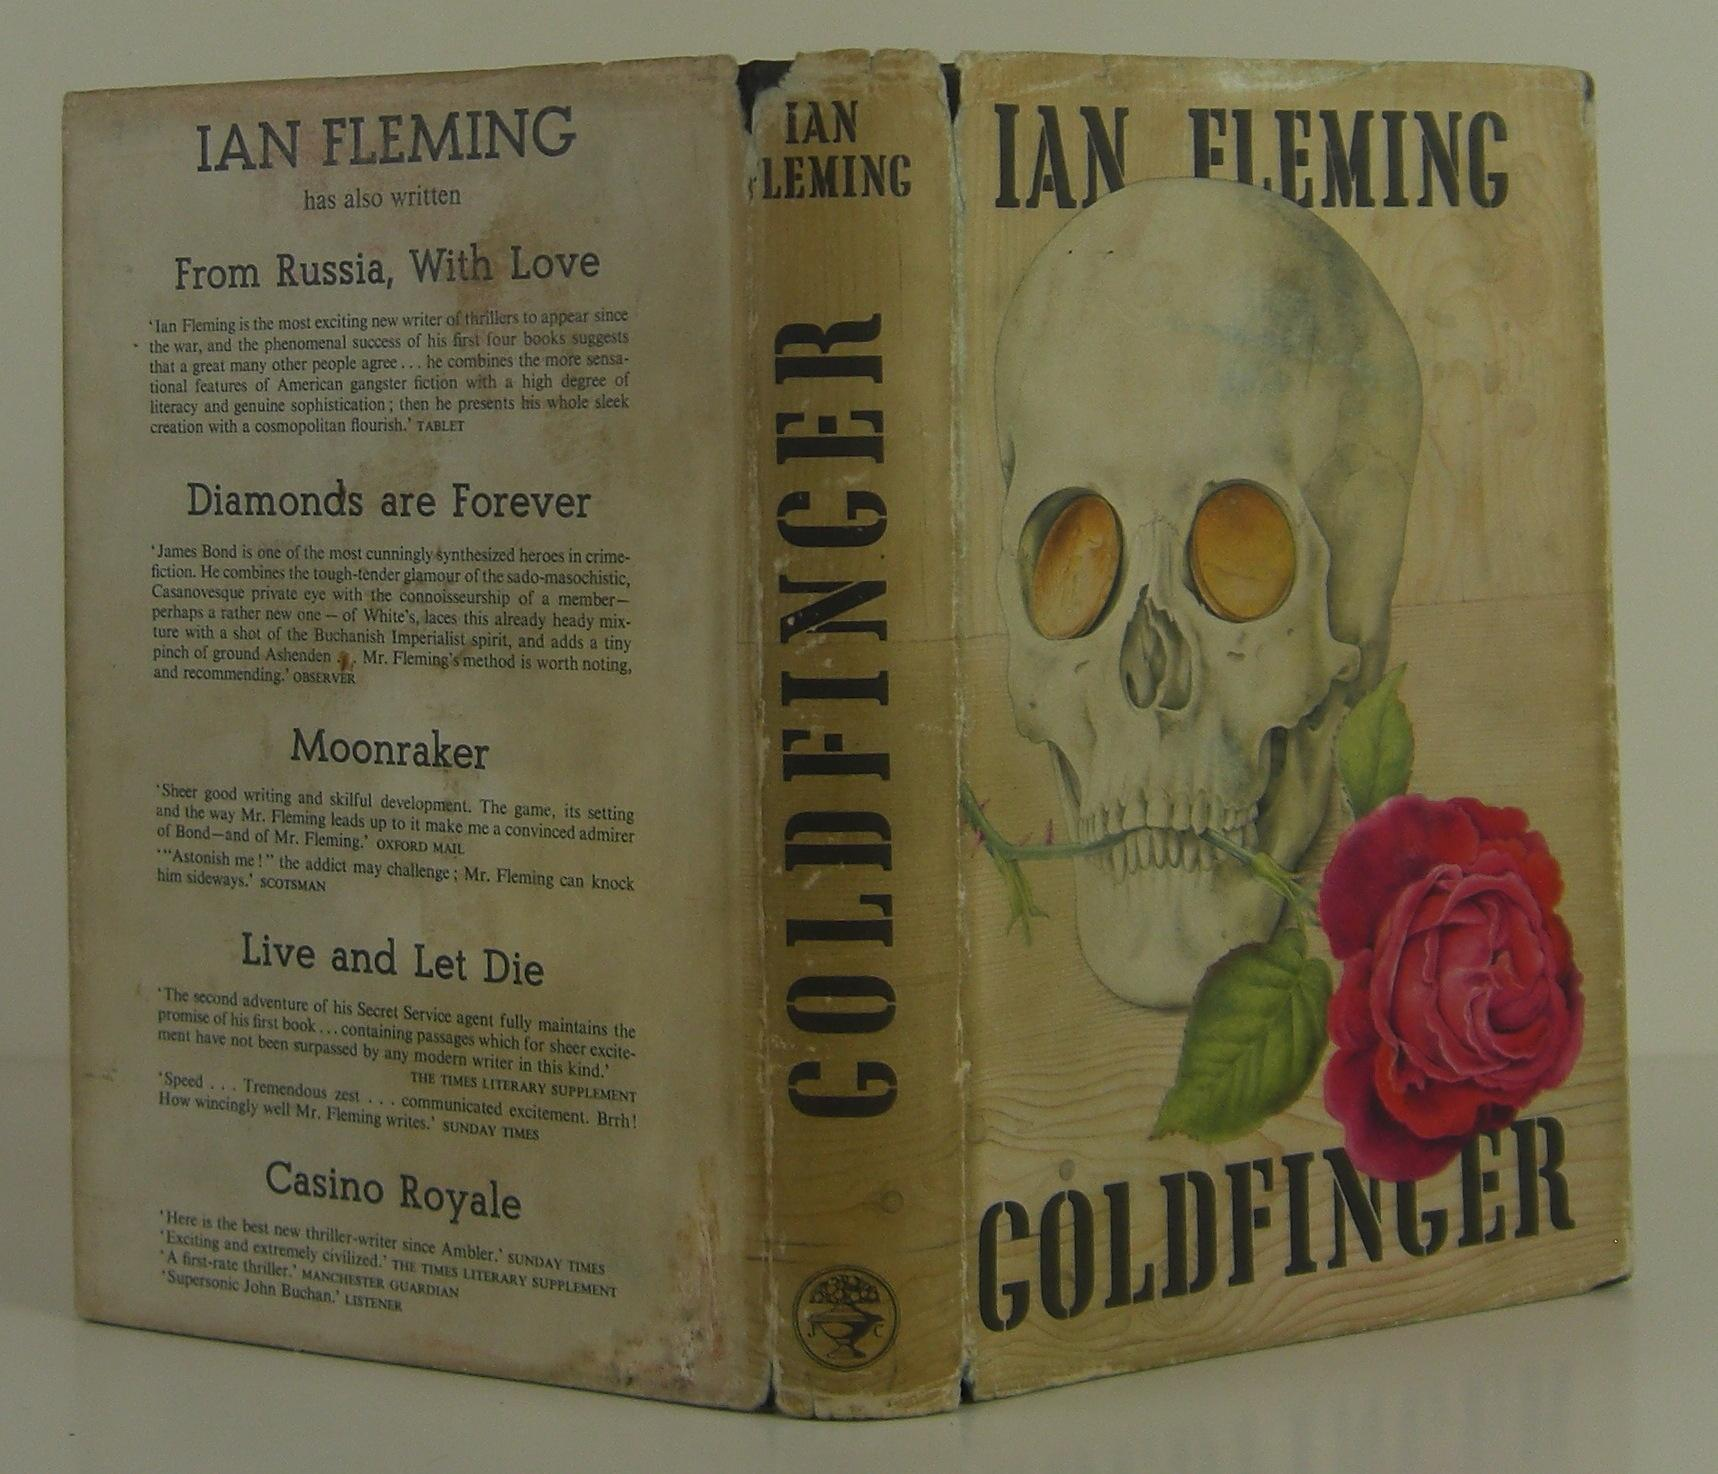 Goldfinger By Fleming, Ian: Jonathan Cape Hardcover, 1st